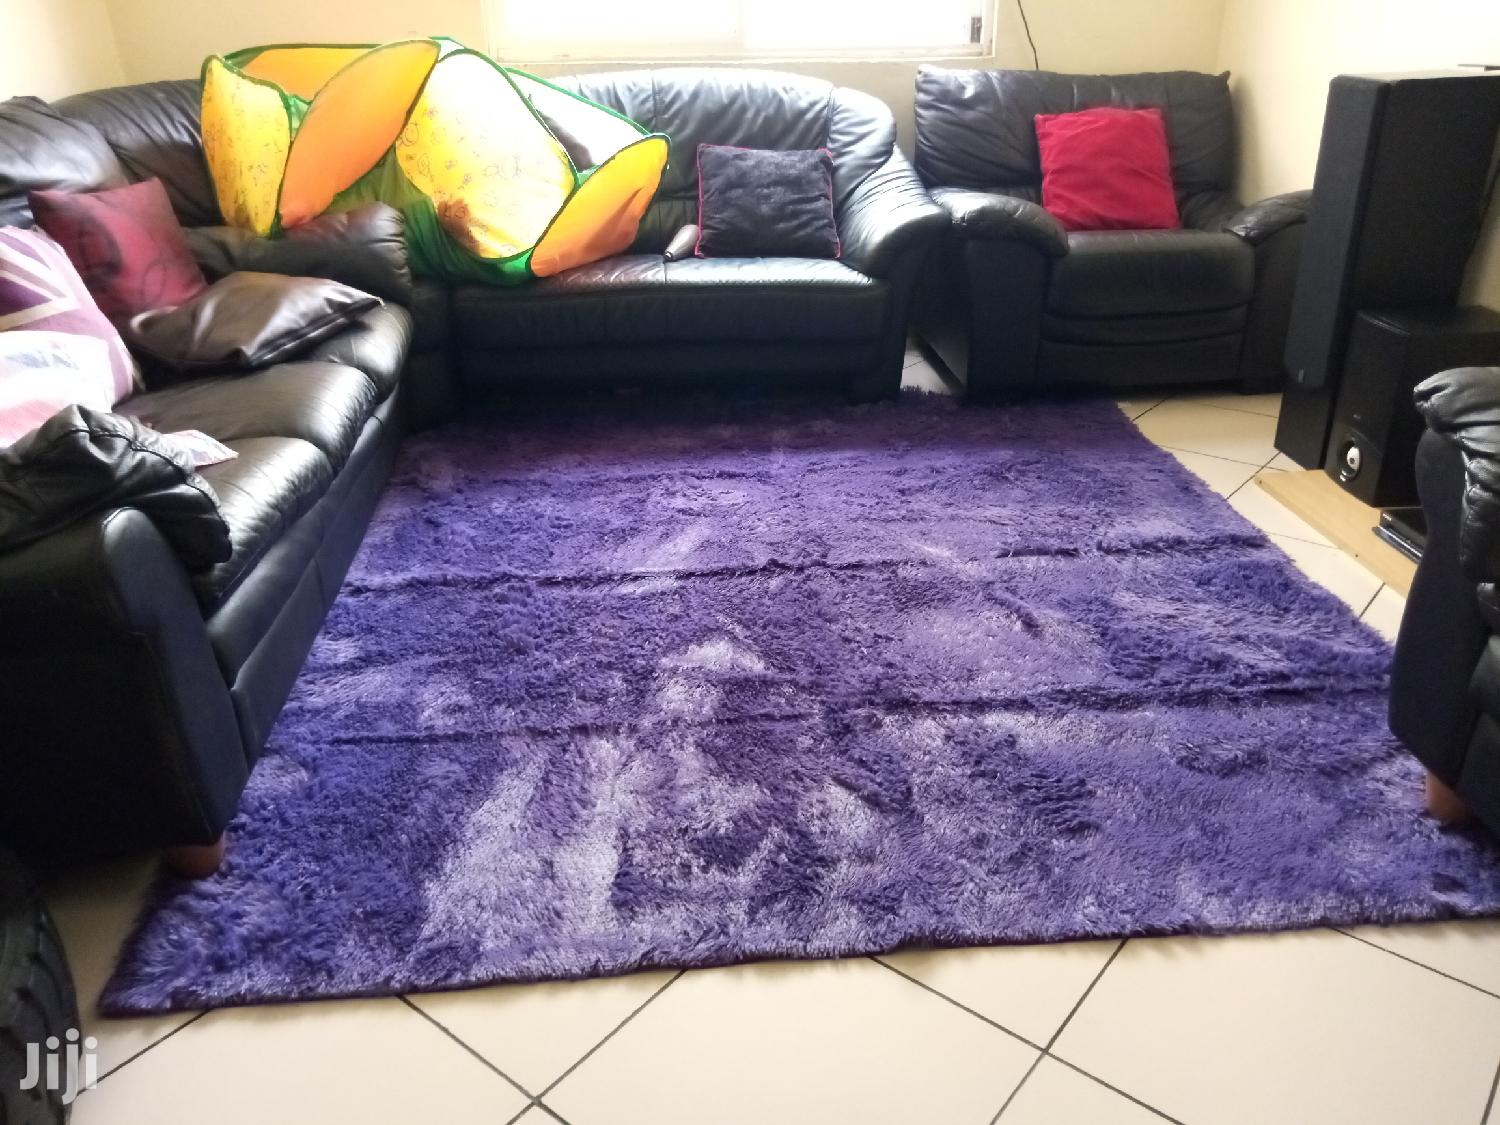 Fluffy Carpets   Home Accessories for sale in Changamwe, Mombasa, Kenya